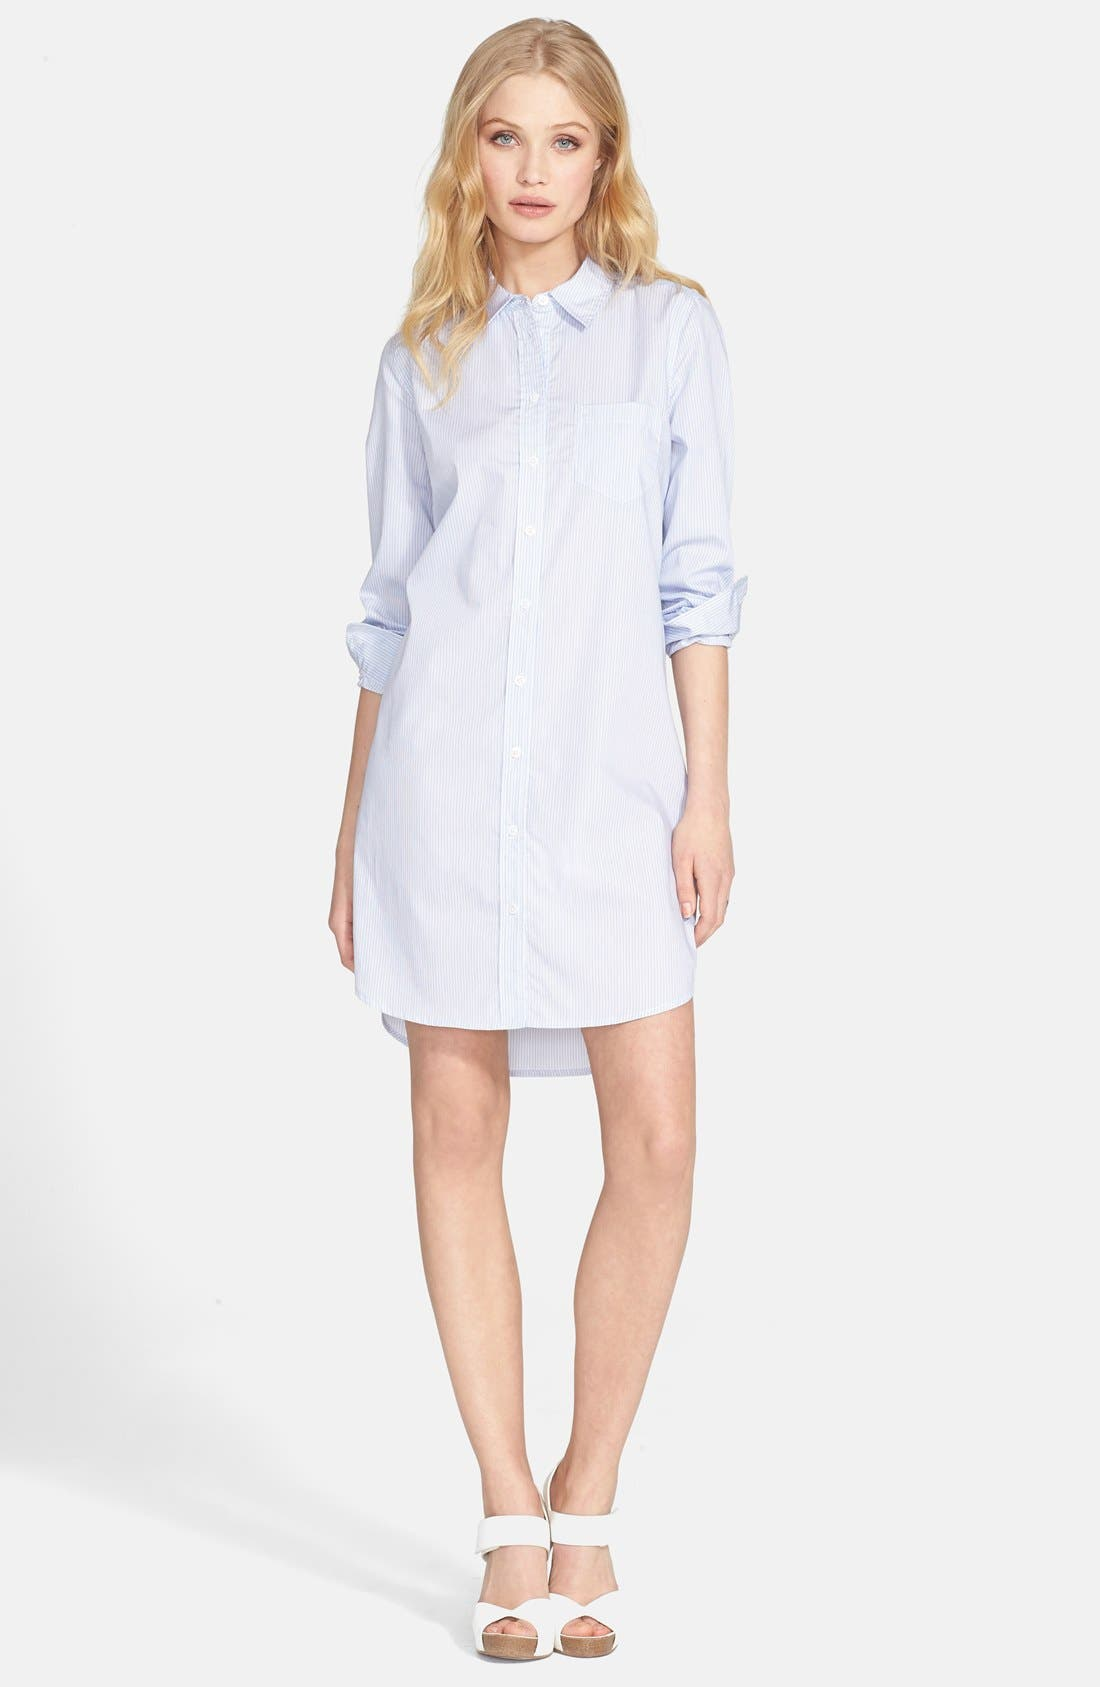 'Brett' Stripe Shirtdress,                             Main thumbnail 1, color,                             Periwinkle Blue/ Bright White